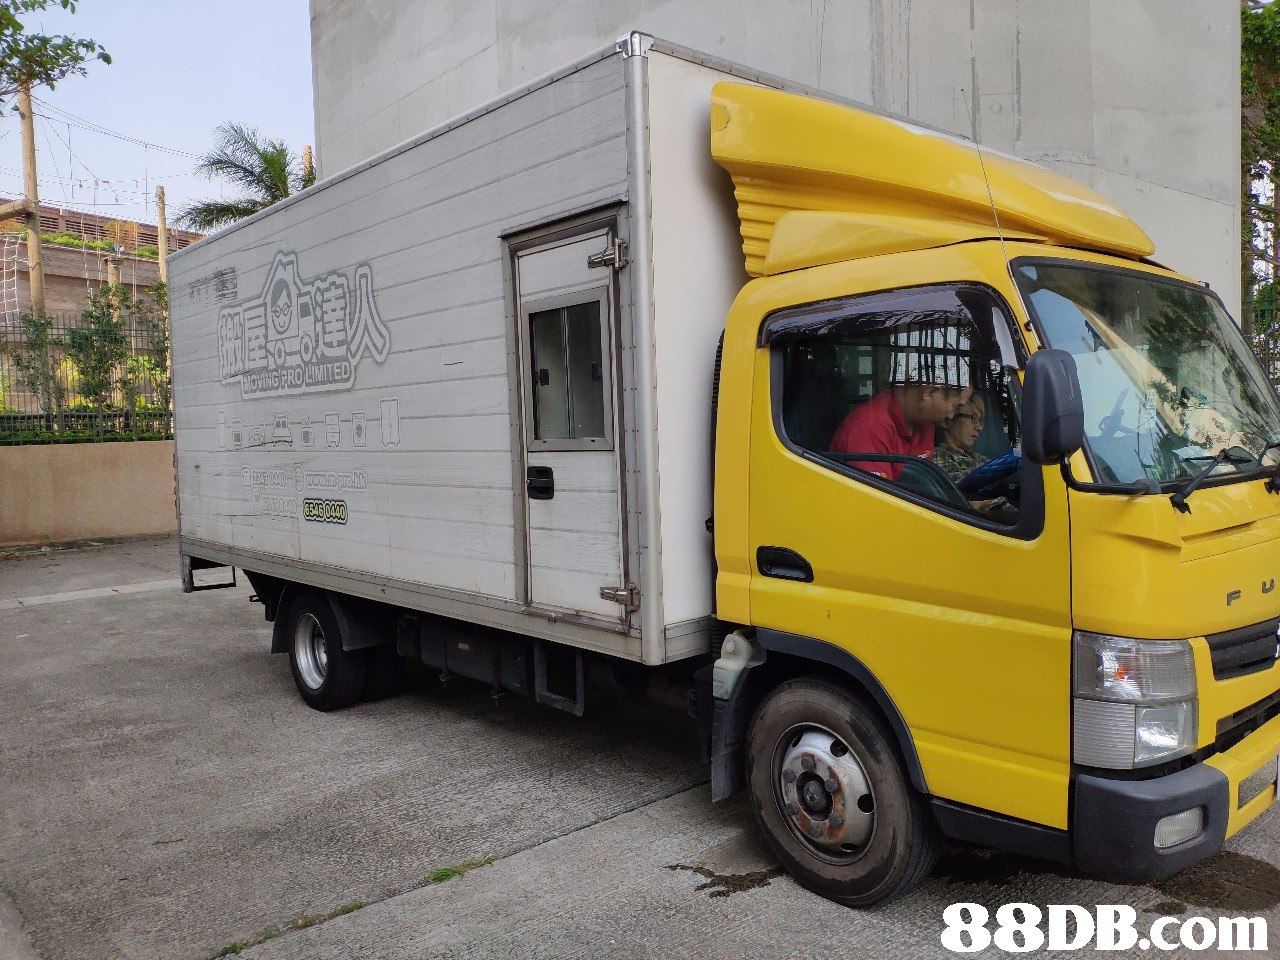 İNGEROLIMITED 88DB.com  transport